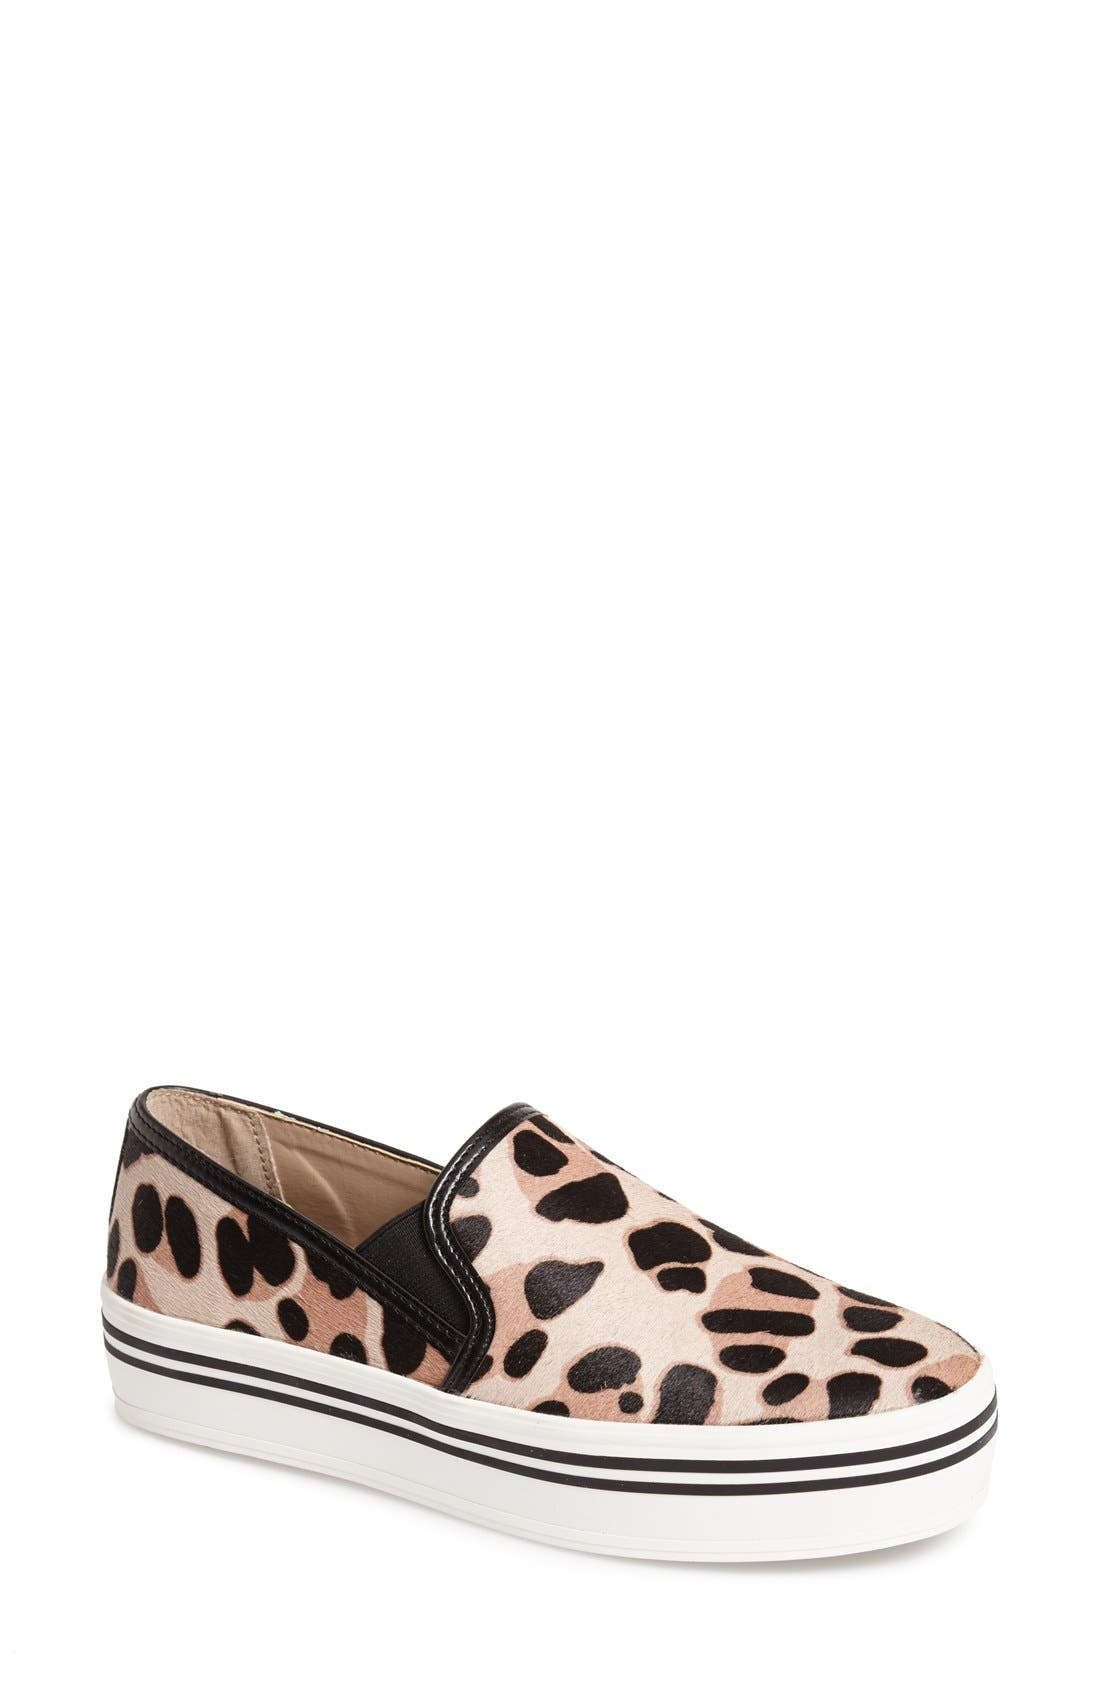 DV by Dolce Vita 'Jinsy' Slip-On Sneaker,                         Main,                         color, Leopard